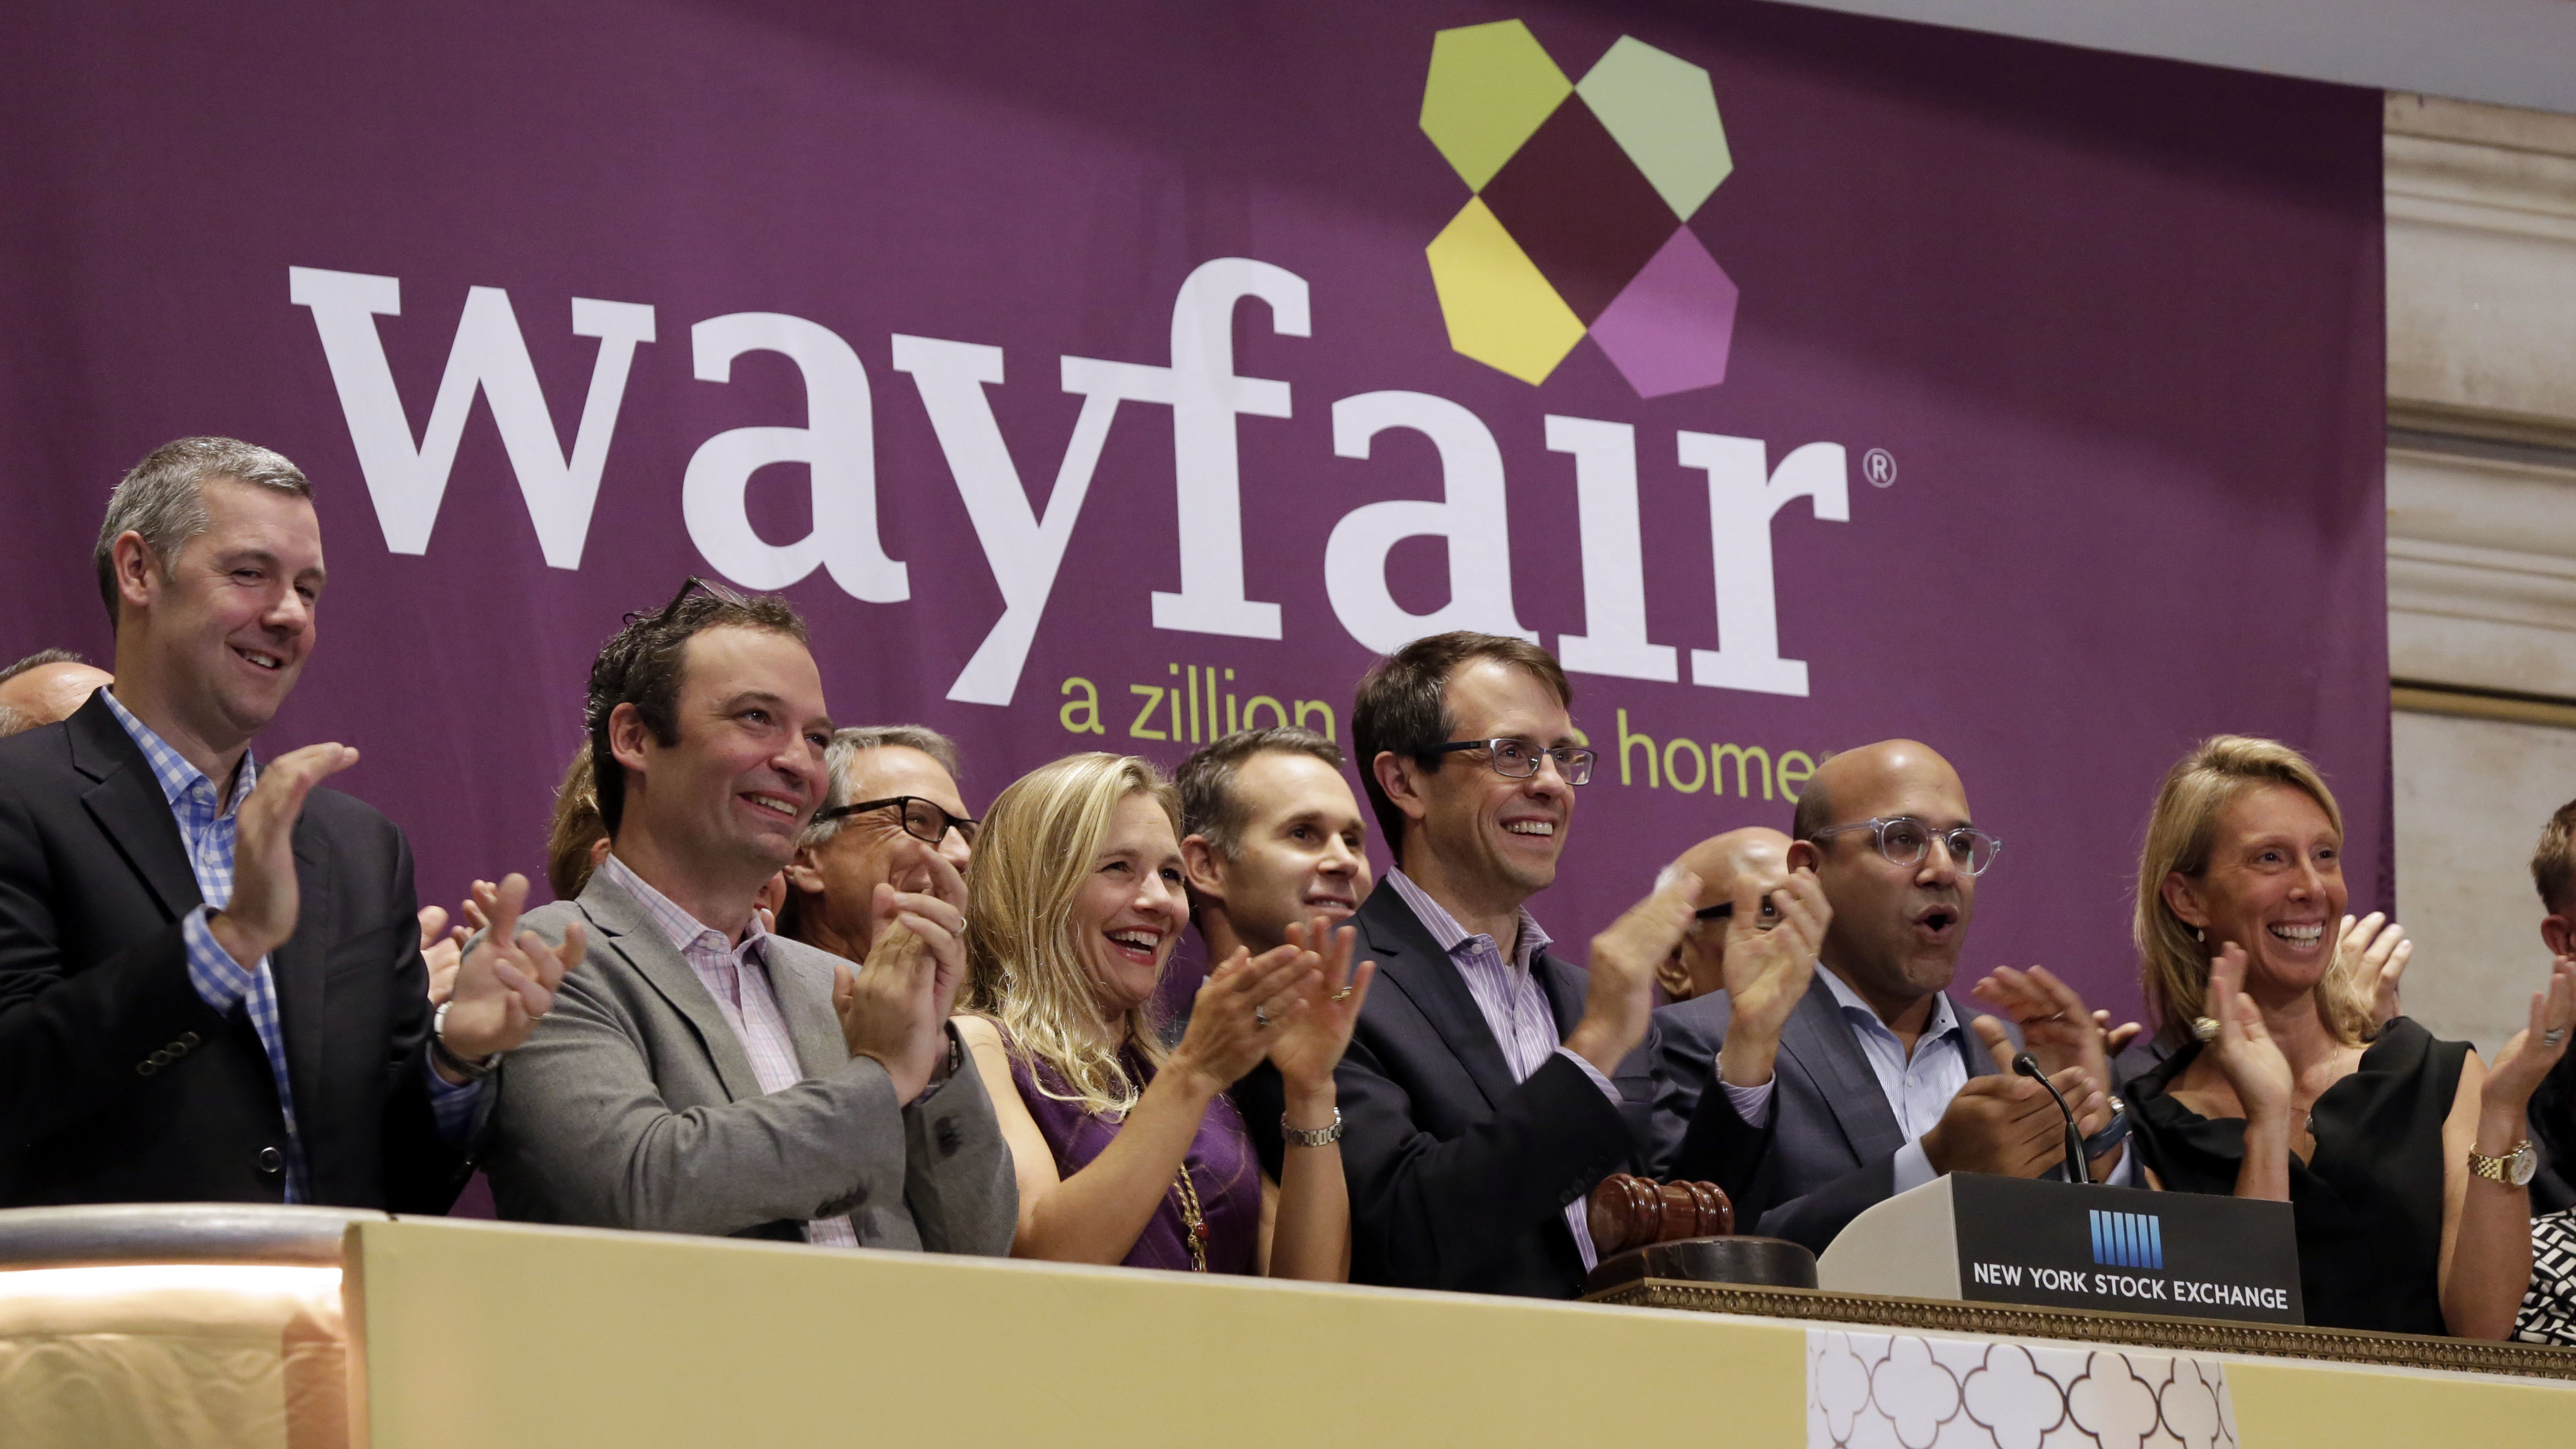 Wayfair, Amazon, Walmart, and Sears all sell the same